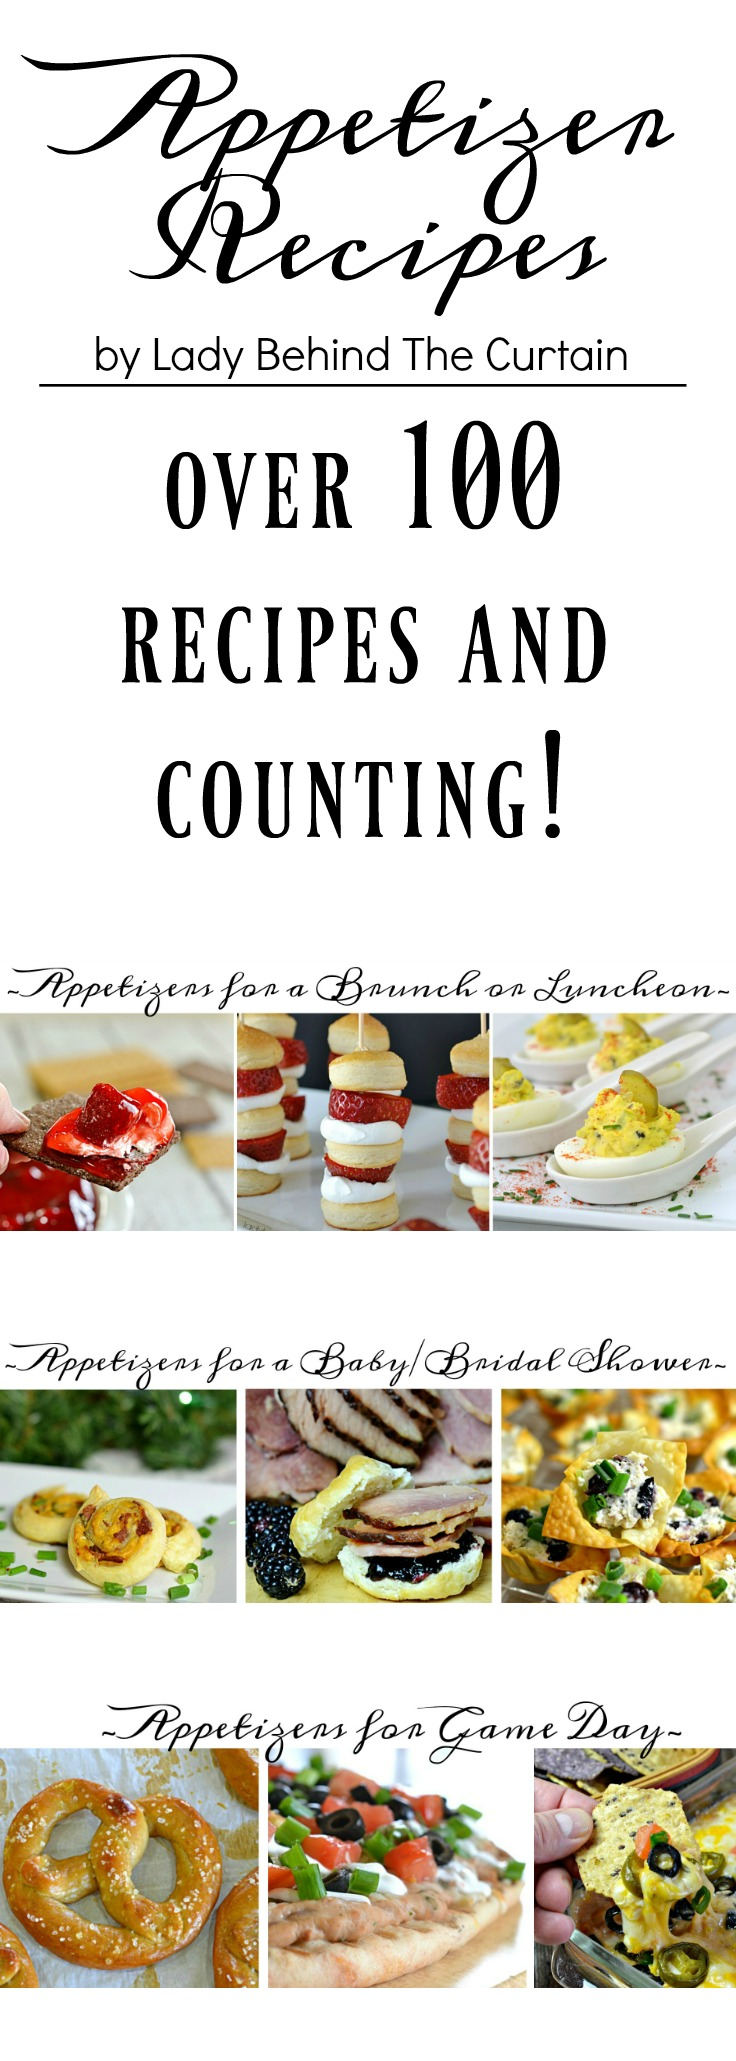 Appetizer Recipes by Lady Behind The Curtain| Apetizers for any occasion! baby shower appetizers, bridal shower appetizers, luncheon appetizers, brunch appetizers, game day appertizers